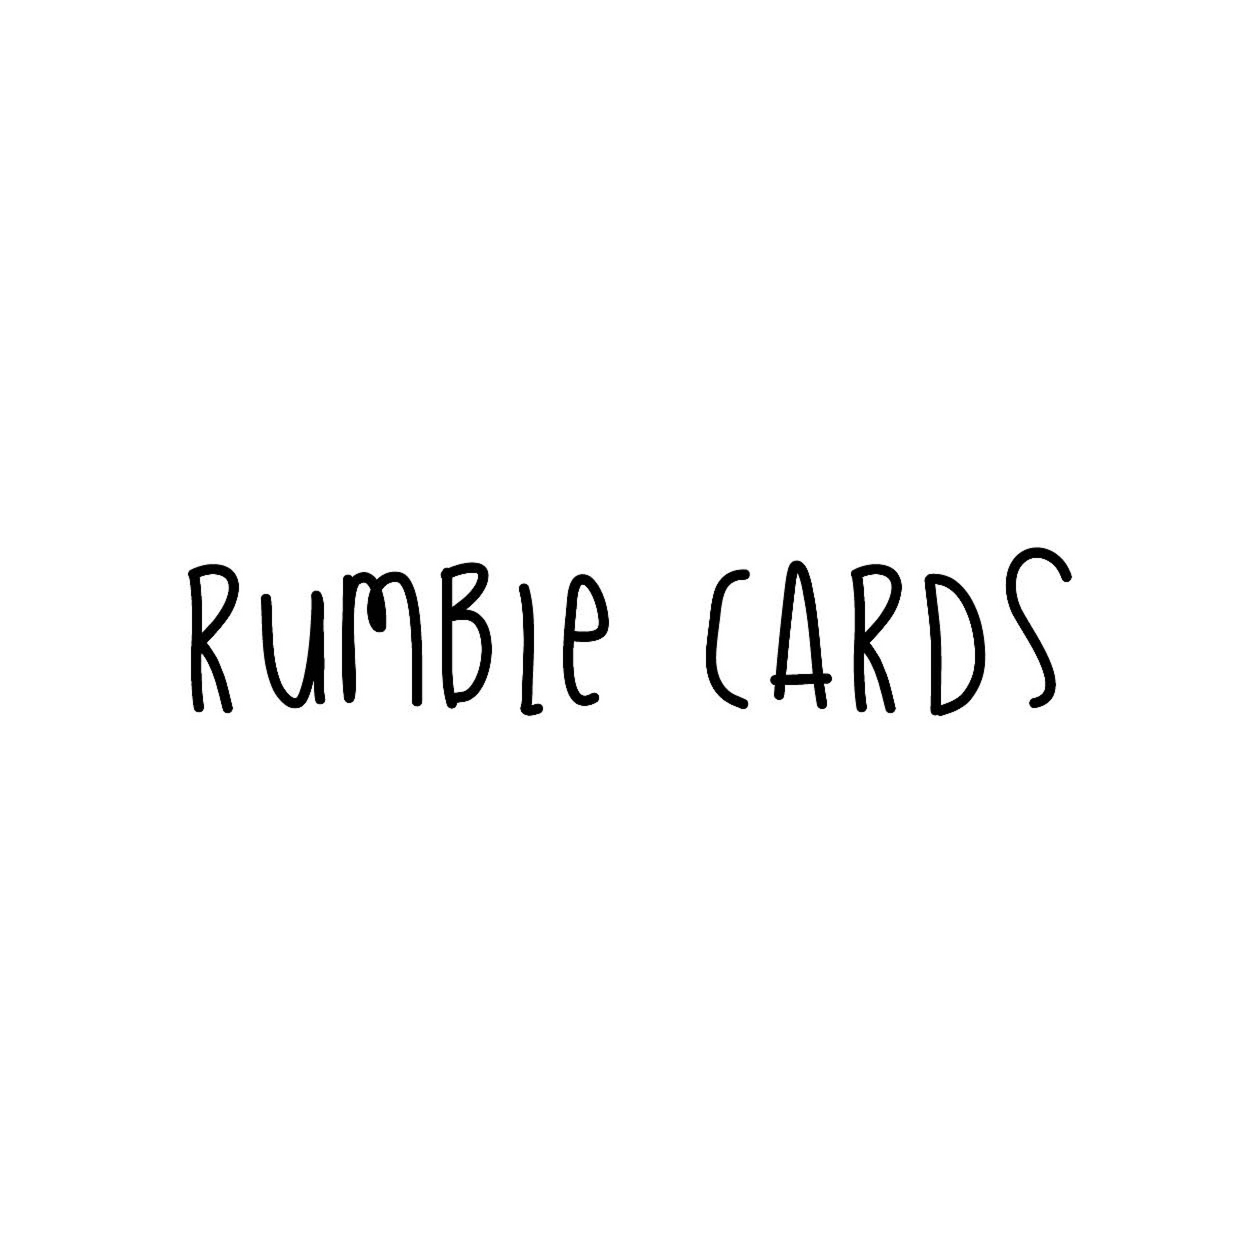 Rumble Cards stationery